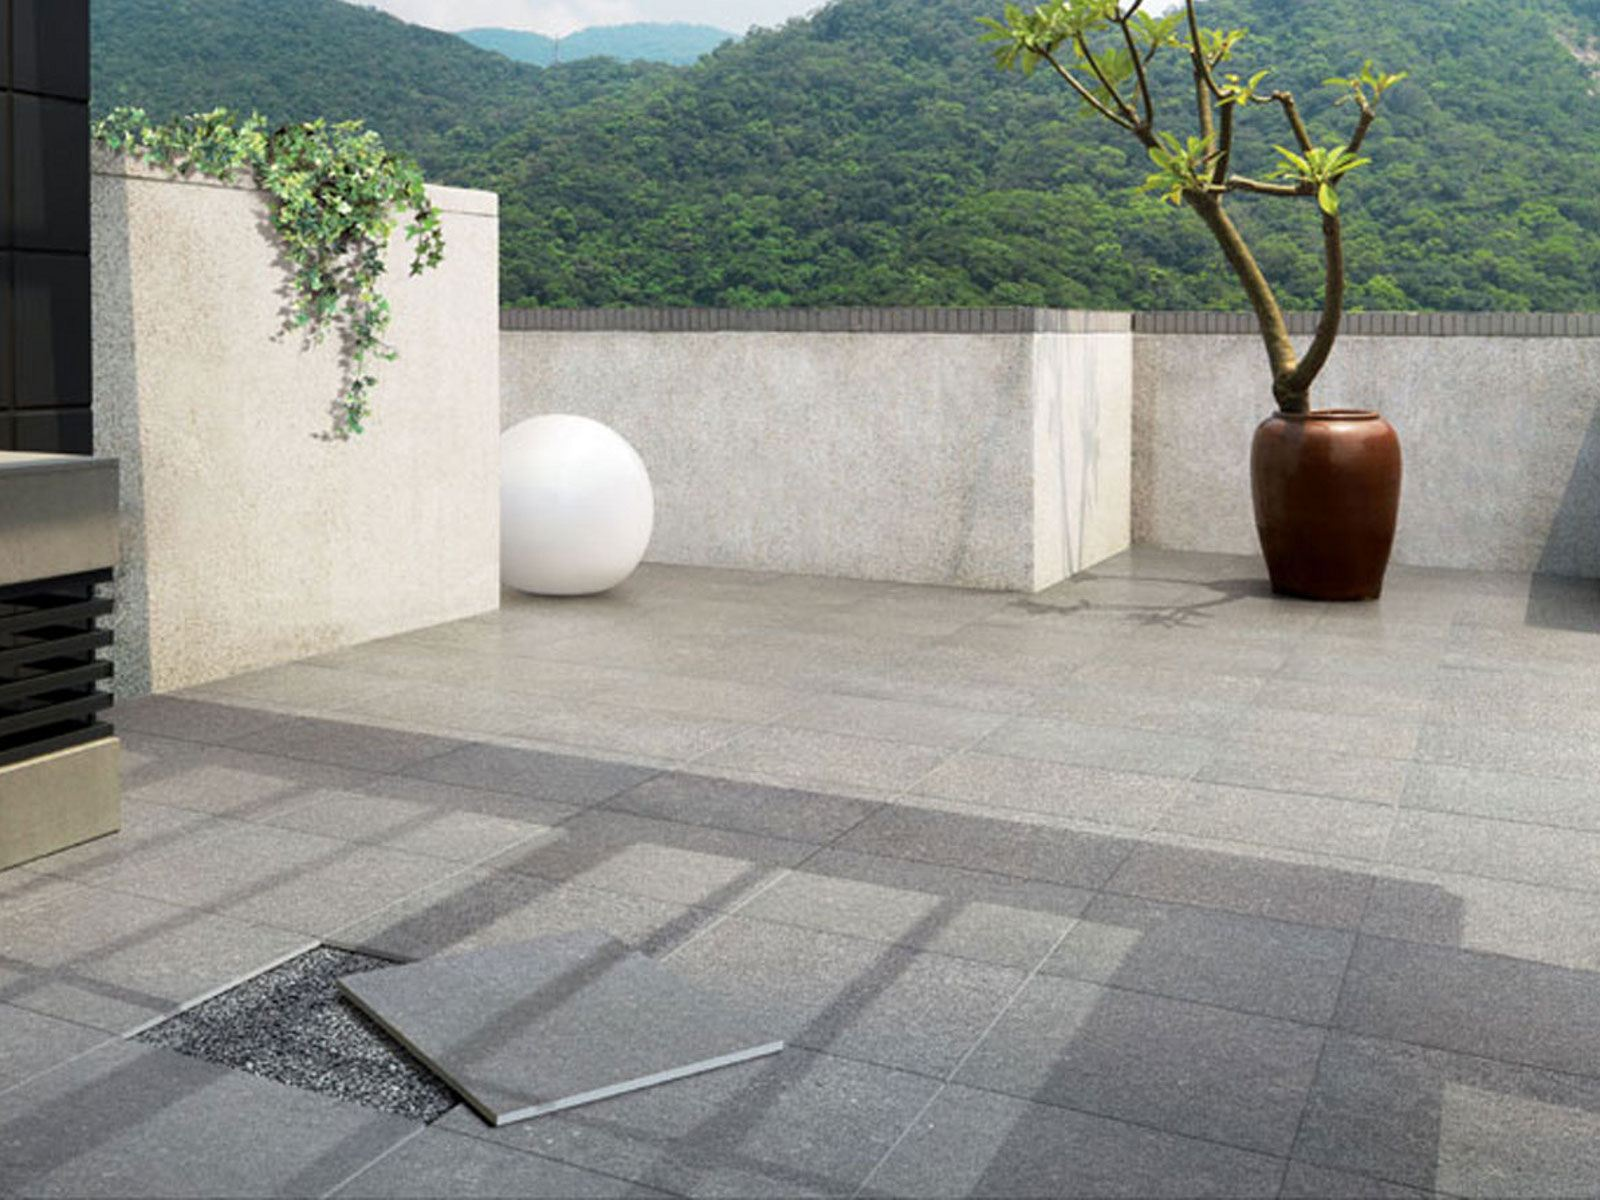 Porcelain stoneware outdoor floor tiles out 2 0 out 2 0 for Carrelage refin